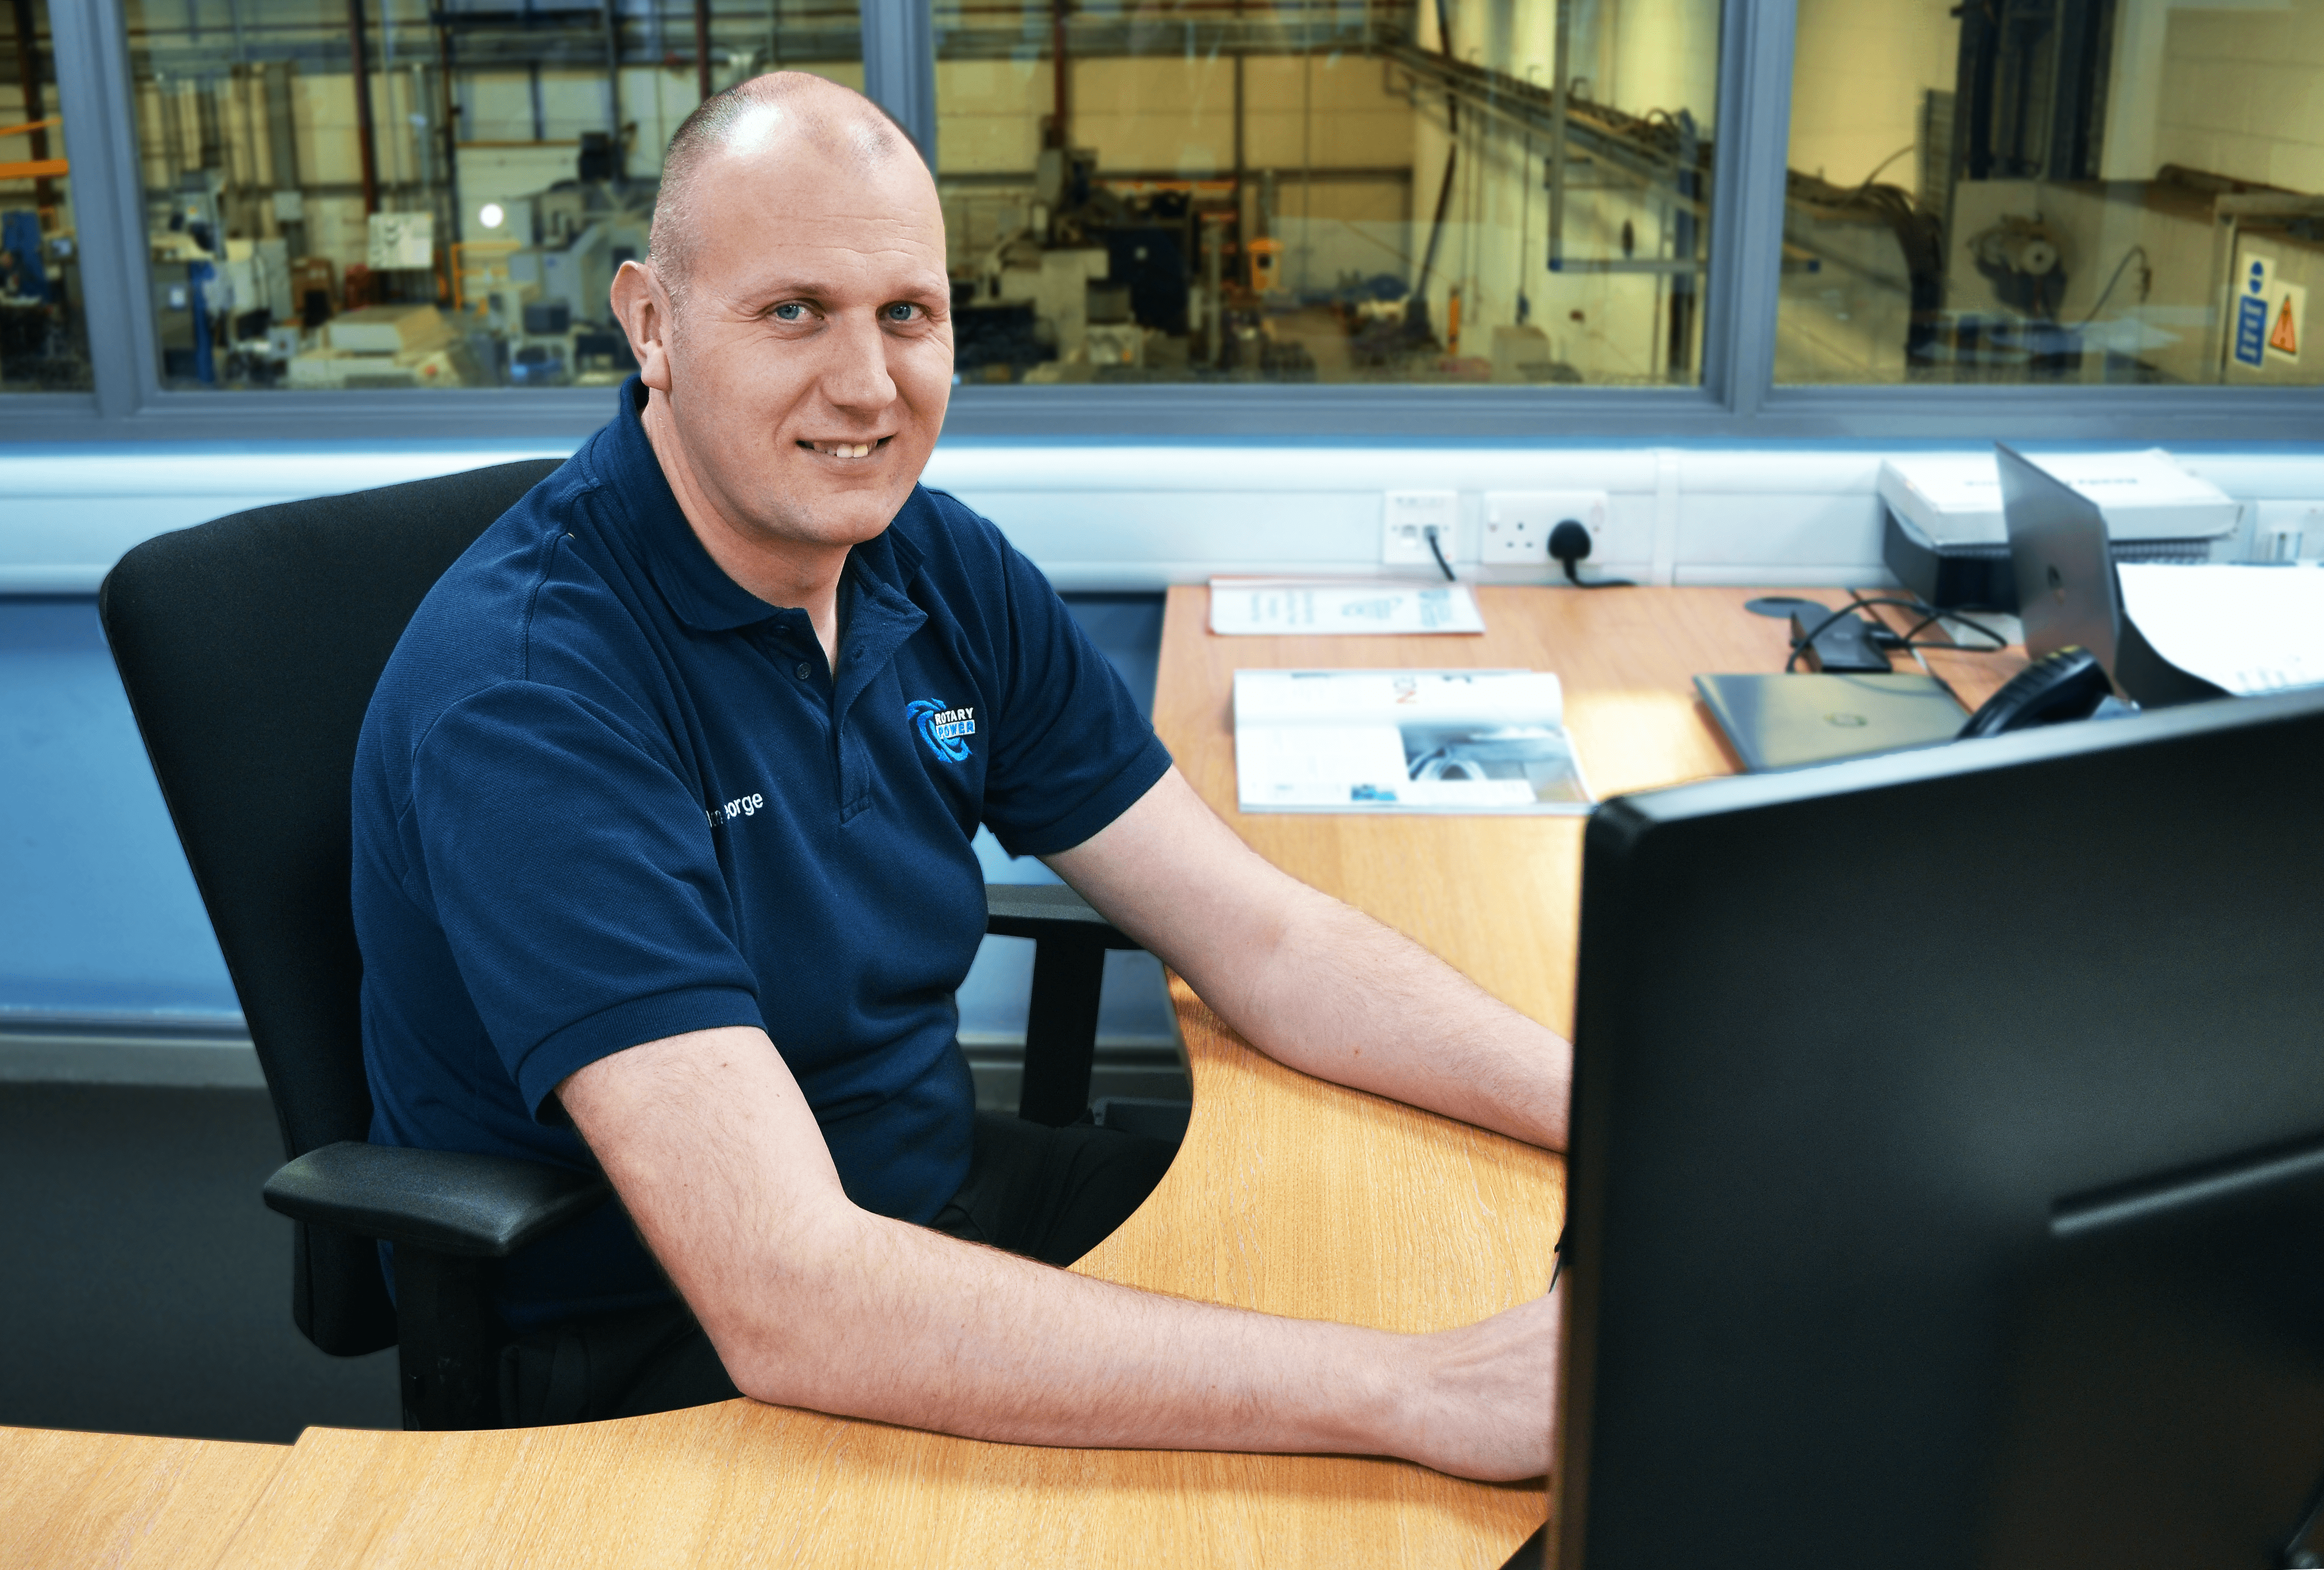 Ian discusses his British Engines apprenticeship for National Apprenticeship Week